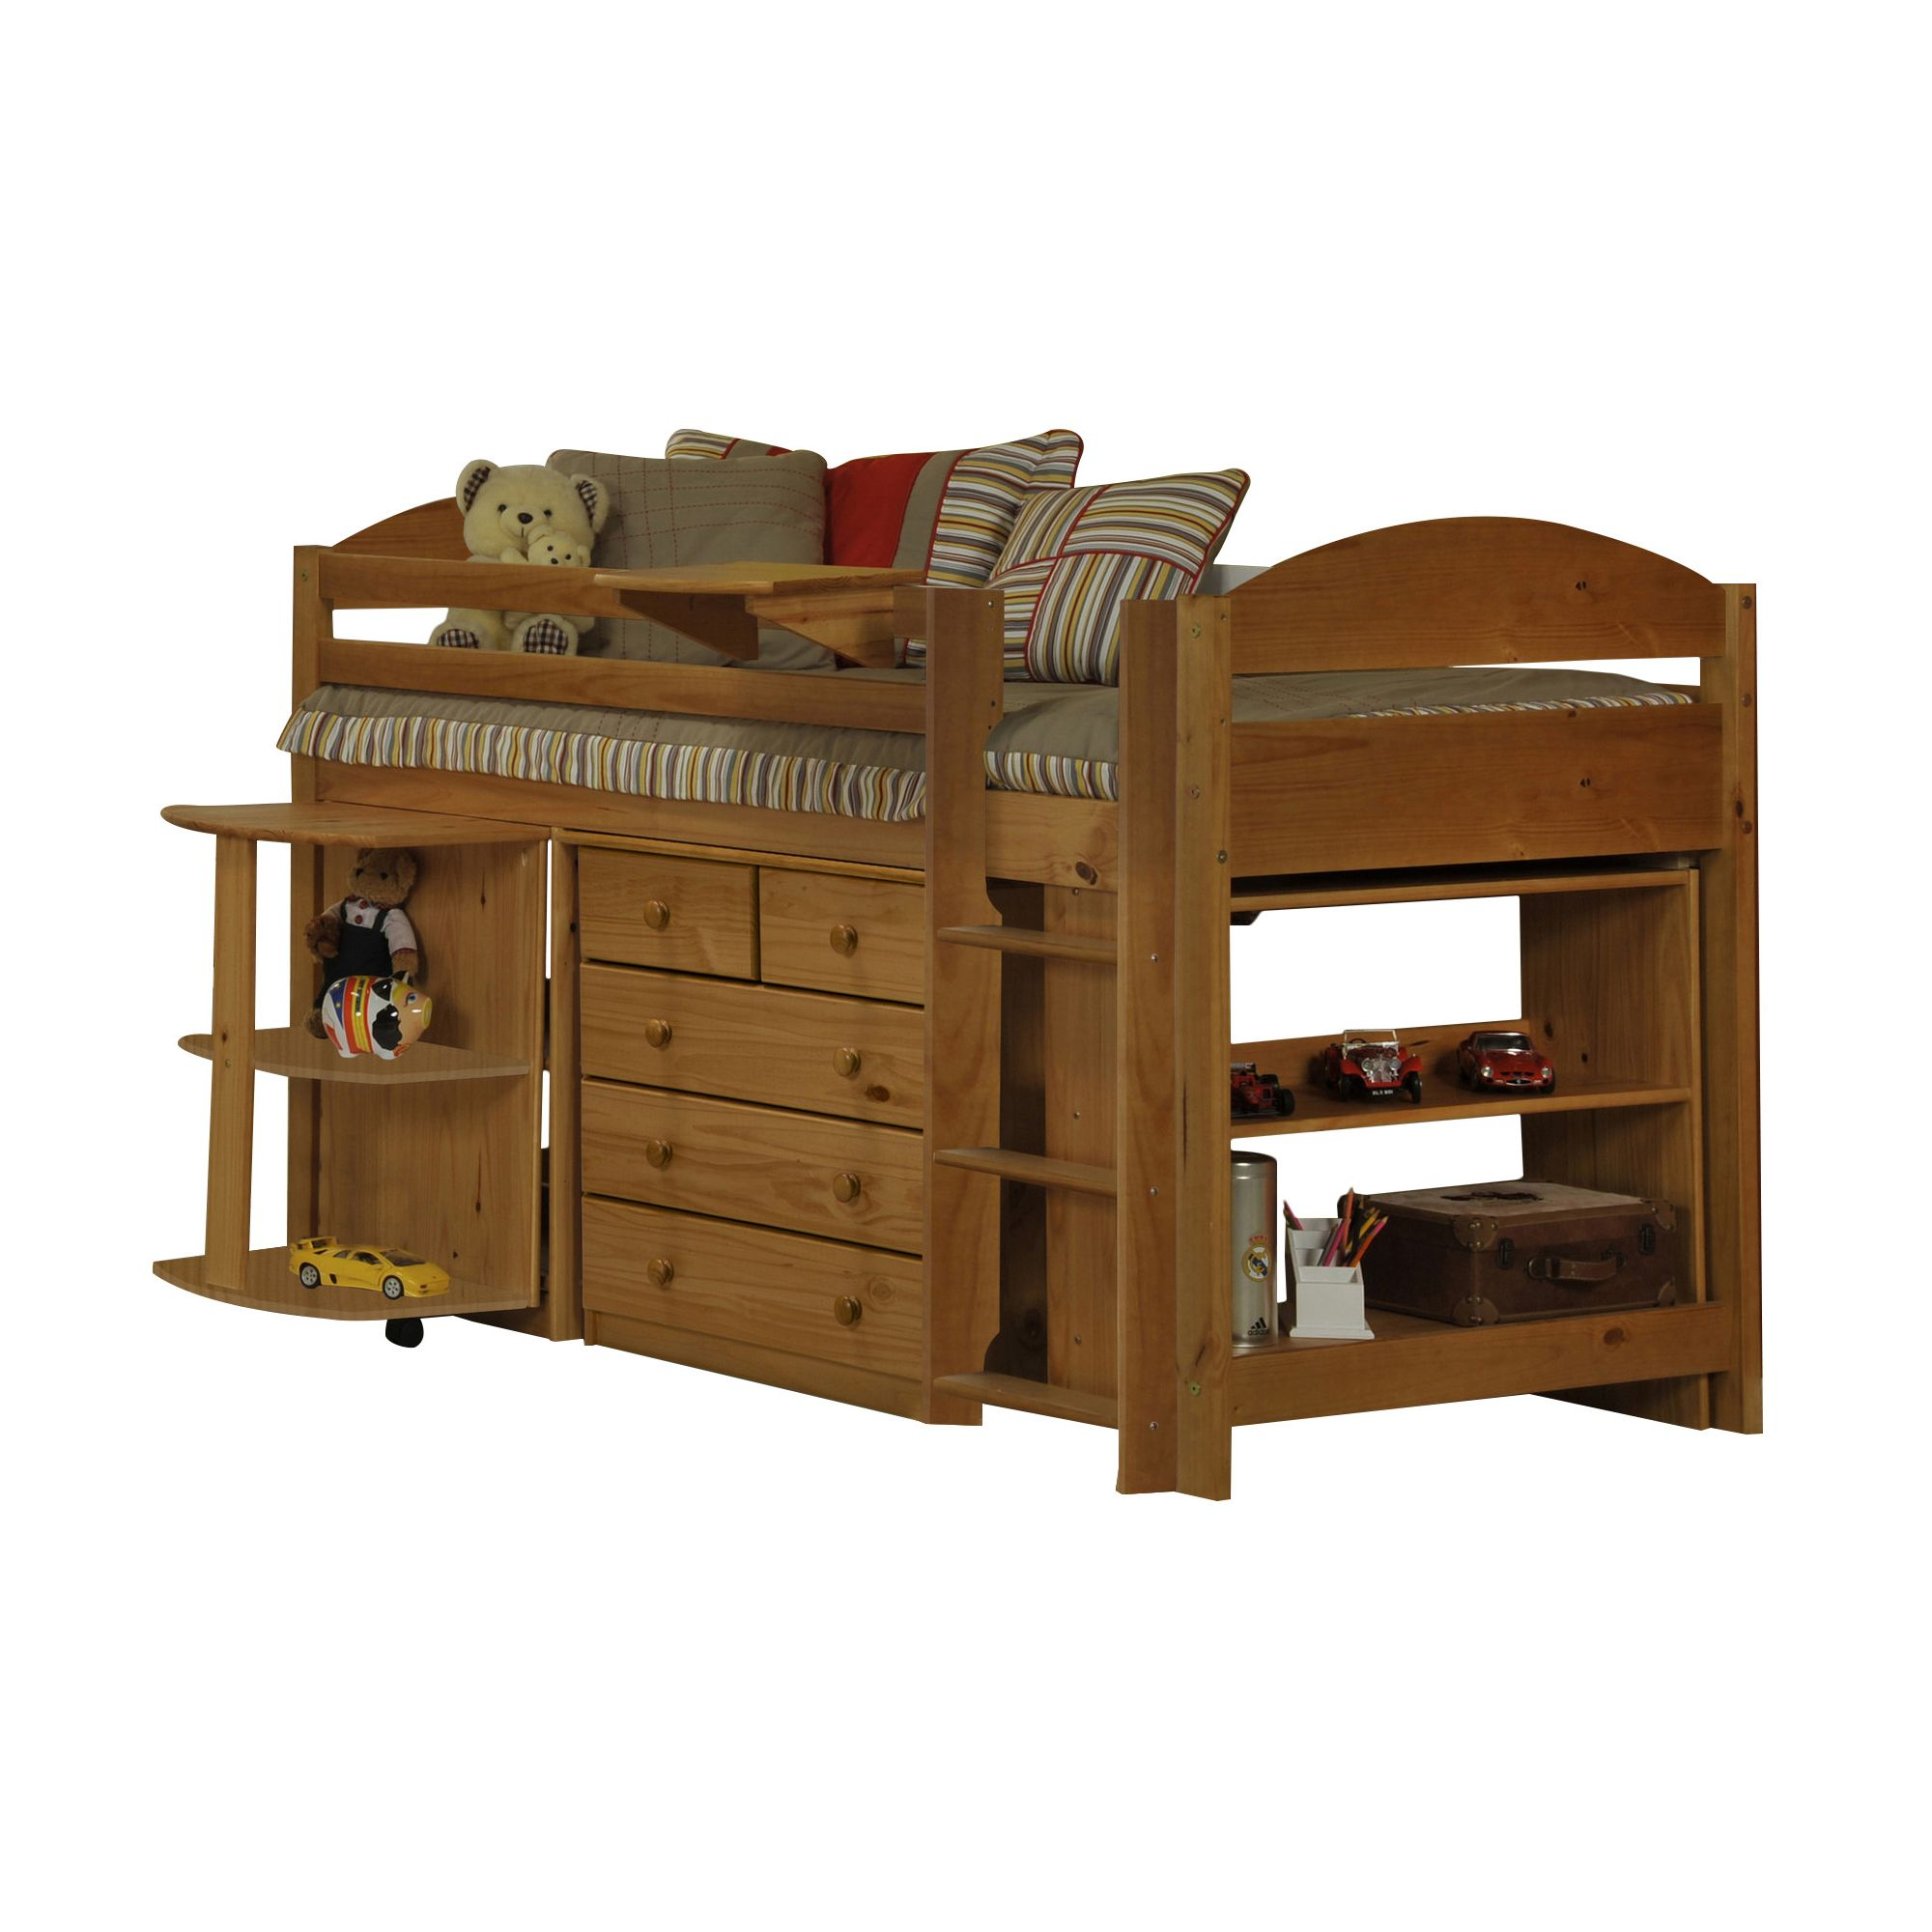 Verona Maximus Midsleeper with Underbed Furniture - Antique at Tescos Direct